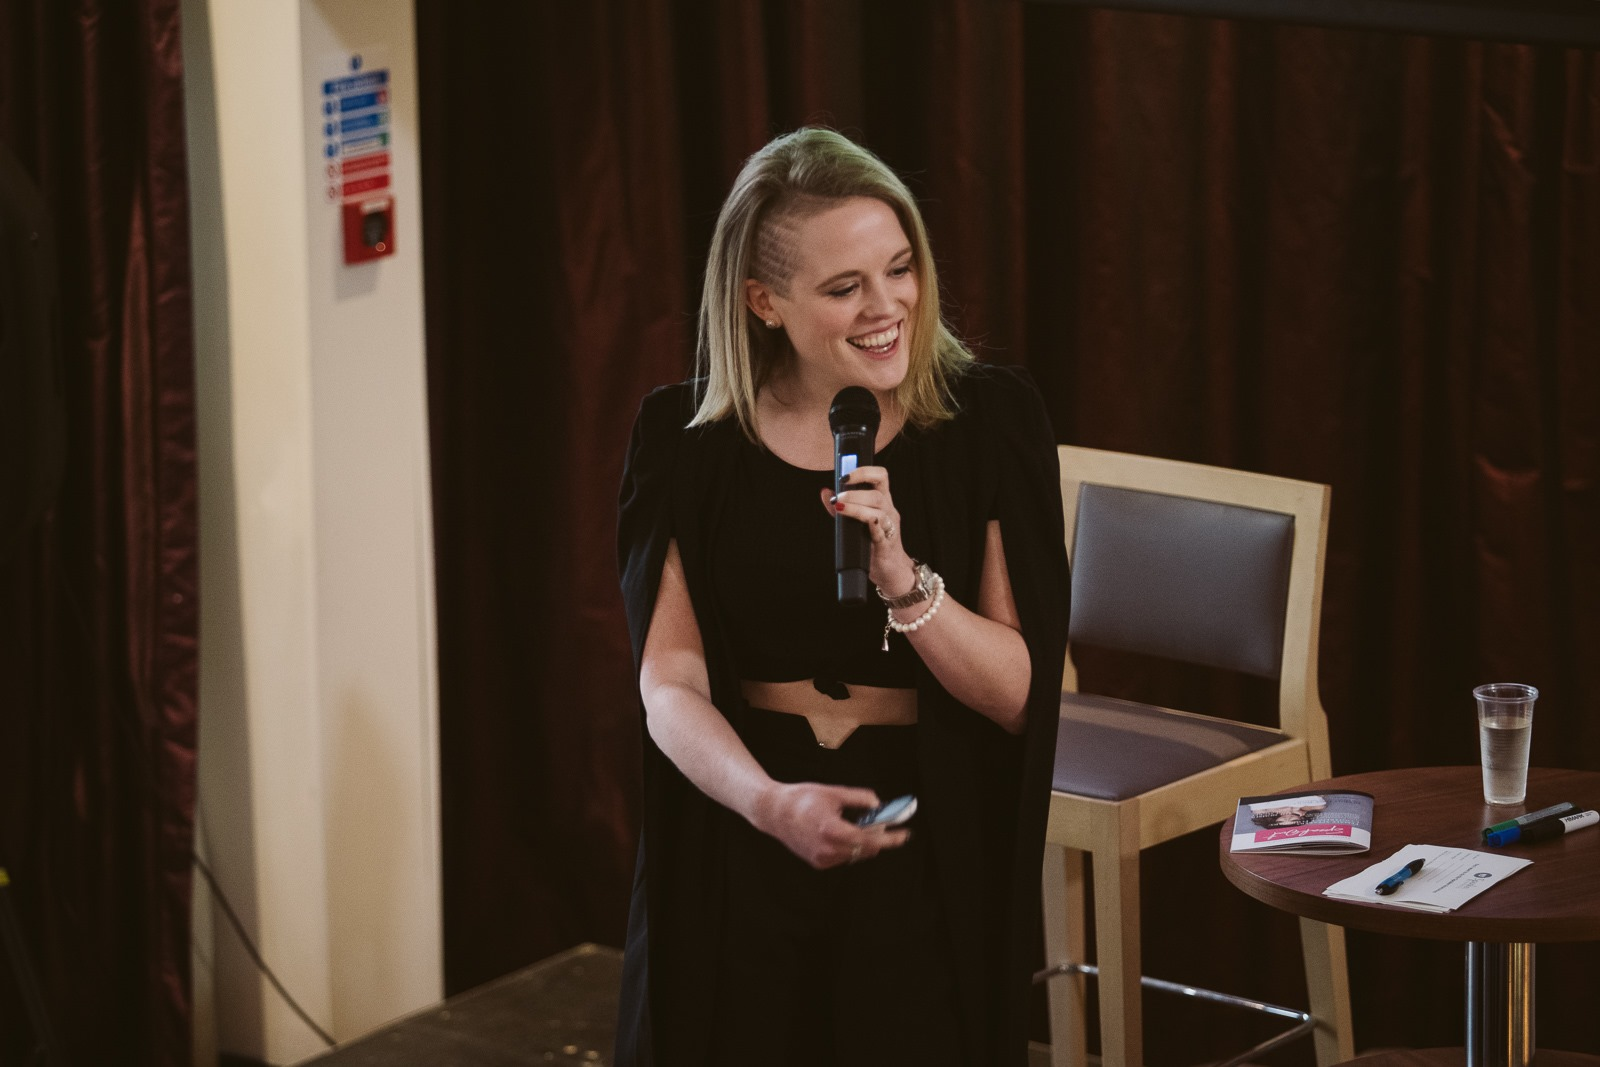 Amy-McManus-by-Emma-Marshall-at-Female-Speaker-Conference-2019